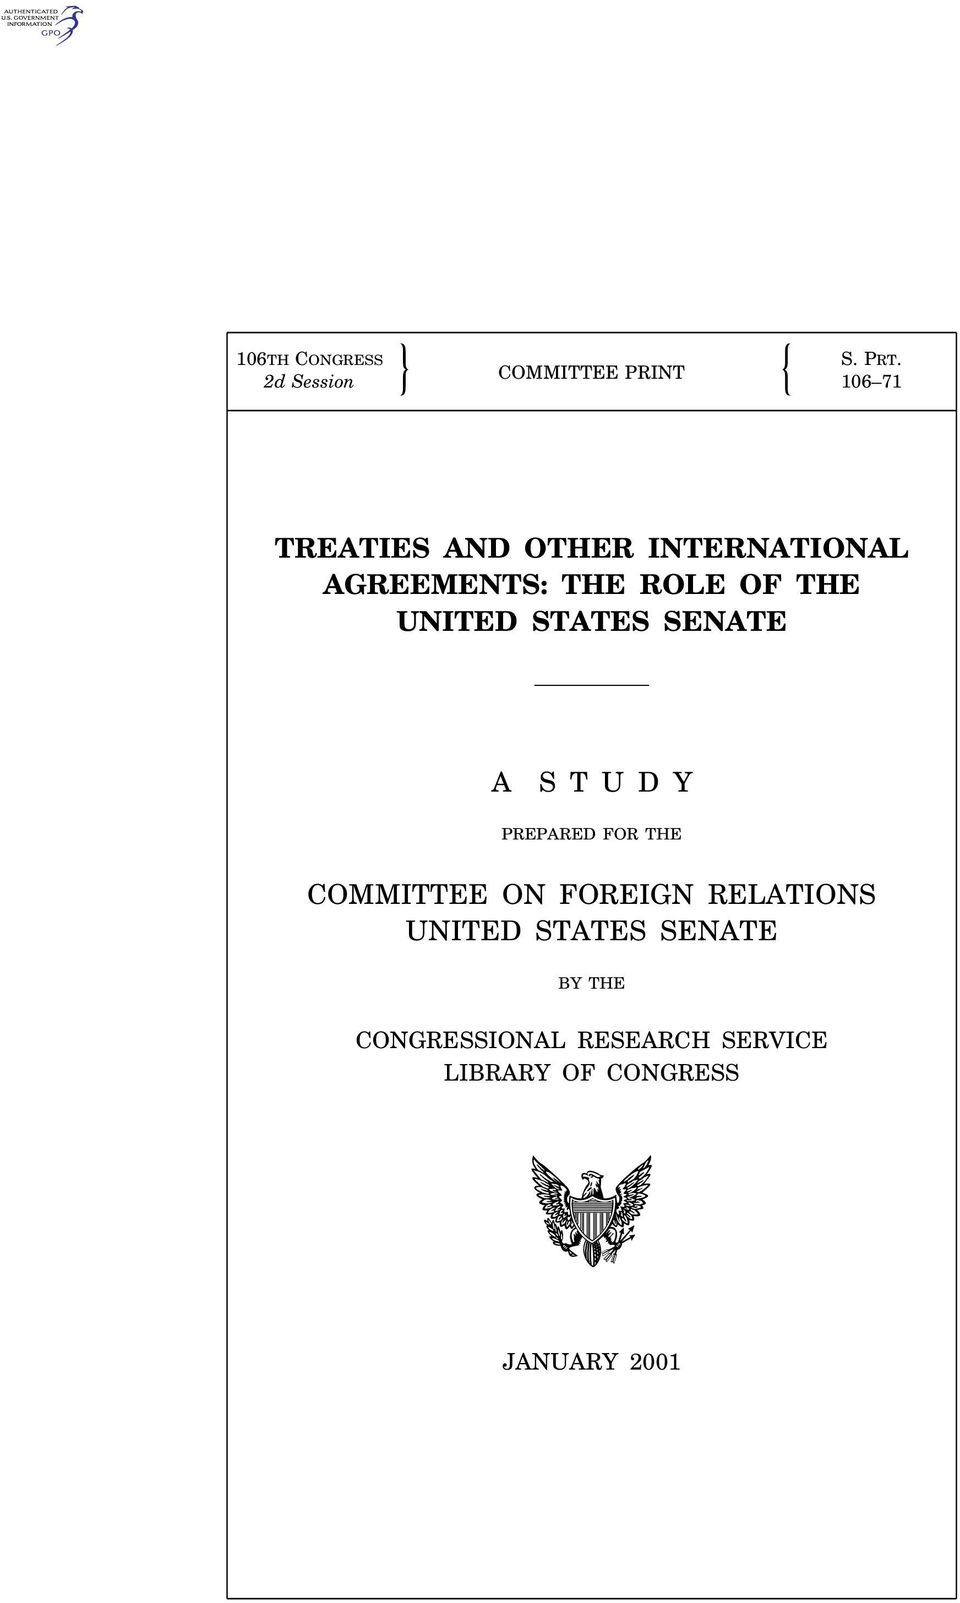 FOR THE COMMITTEE ON FOREIGN RELATIONS UNITED STATES SENATE BY THE CONGRESSIONAL RESEARCH SERVICE